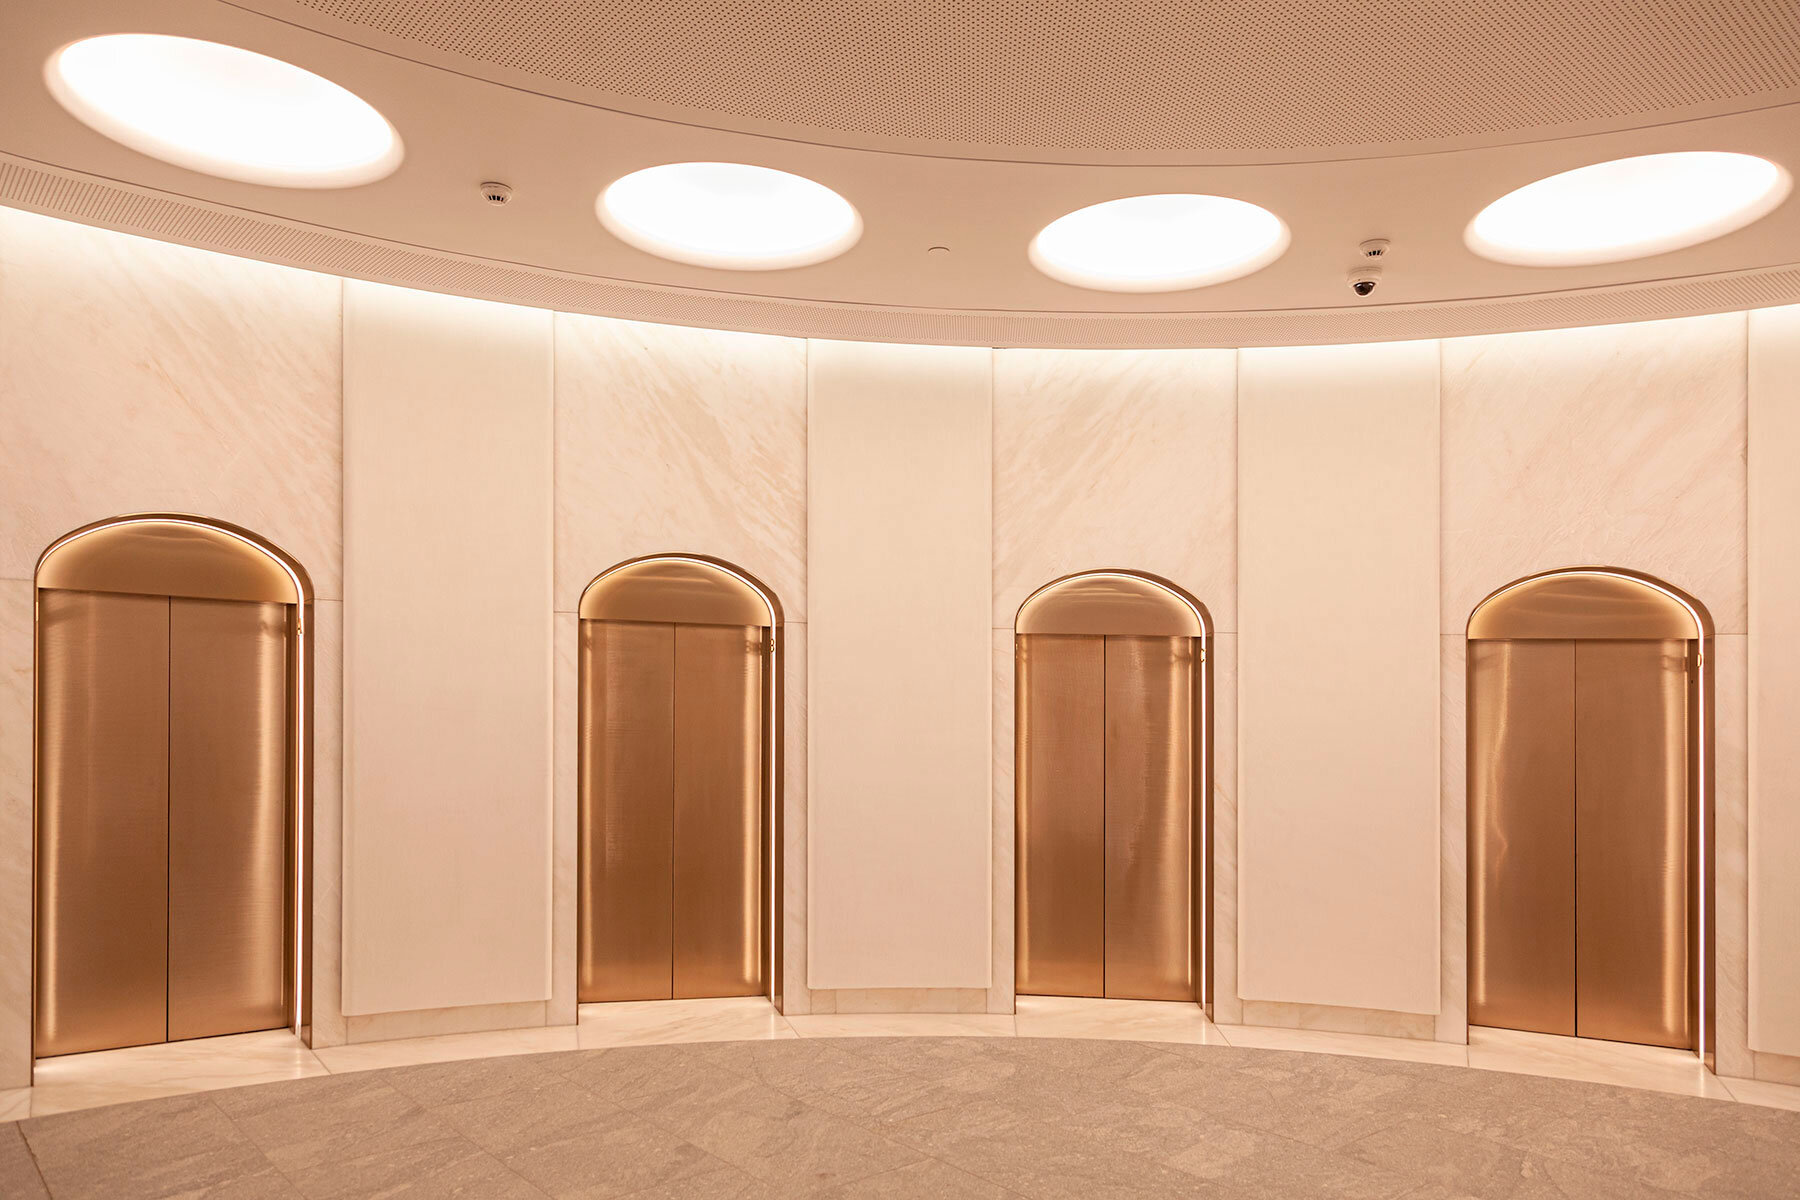 Painted Finish Elevates Lobby Space at 388 George St